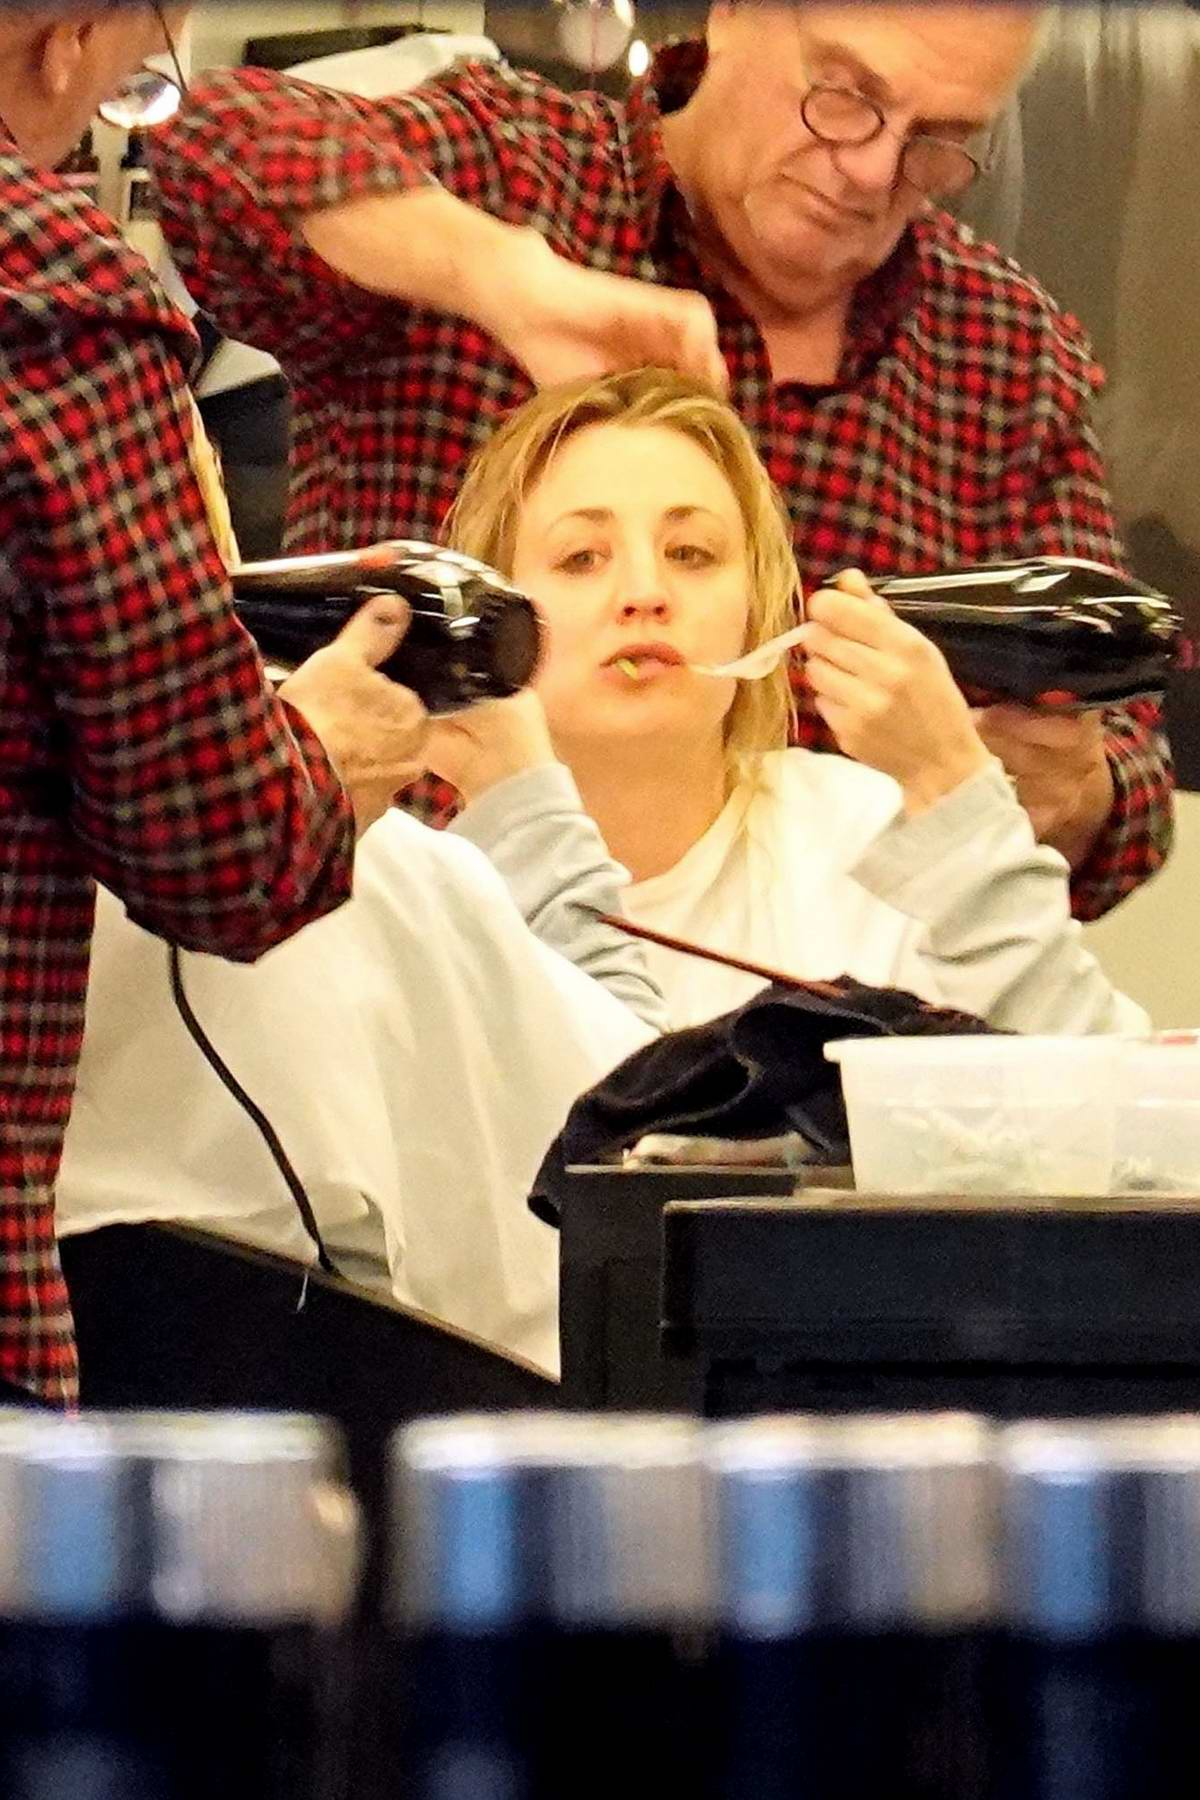 Kaley Cuoco chows down some food while she gets her hair done during her break in Rome, Italy